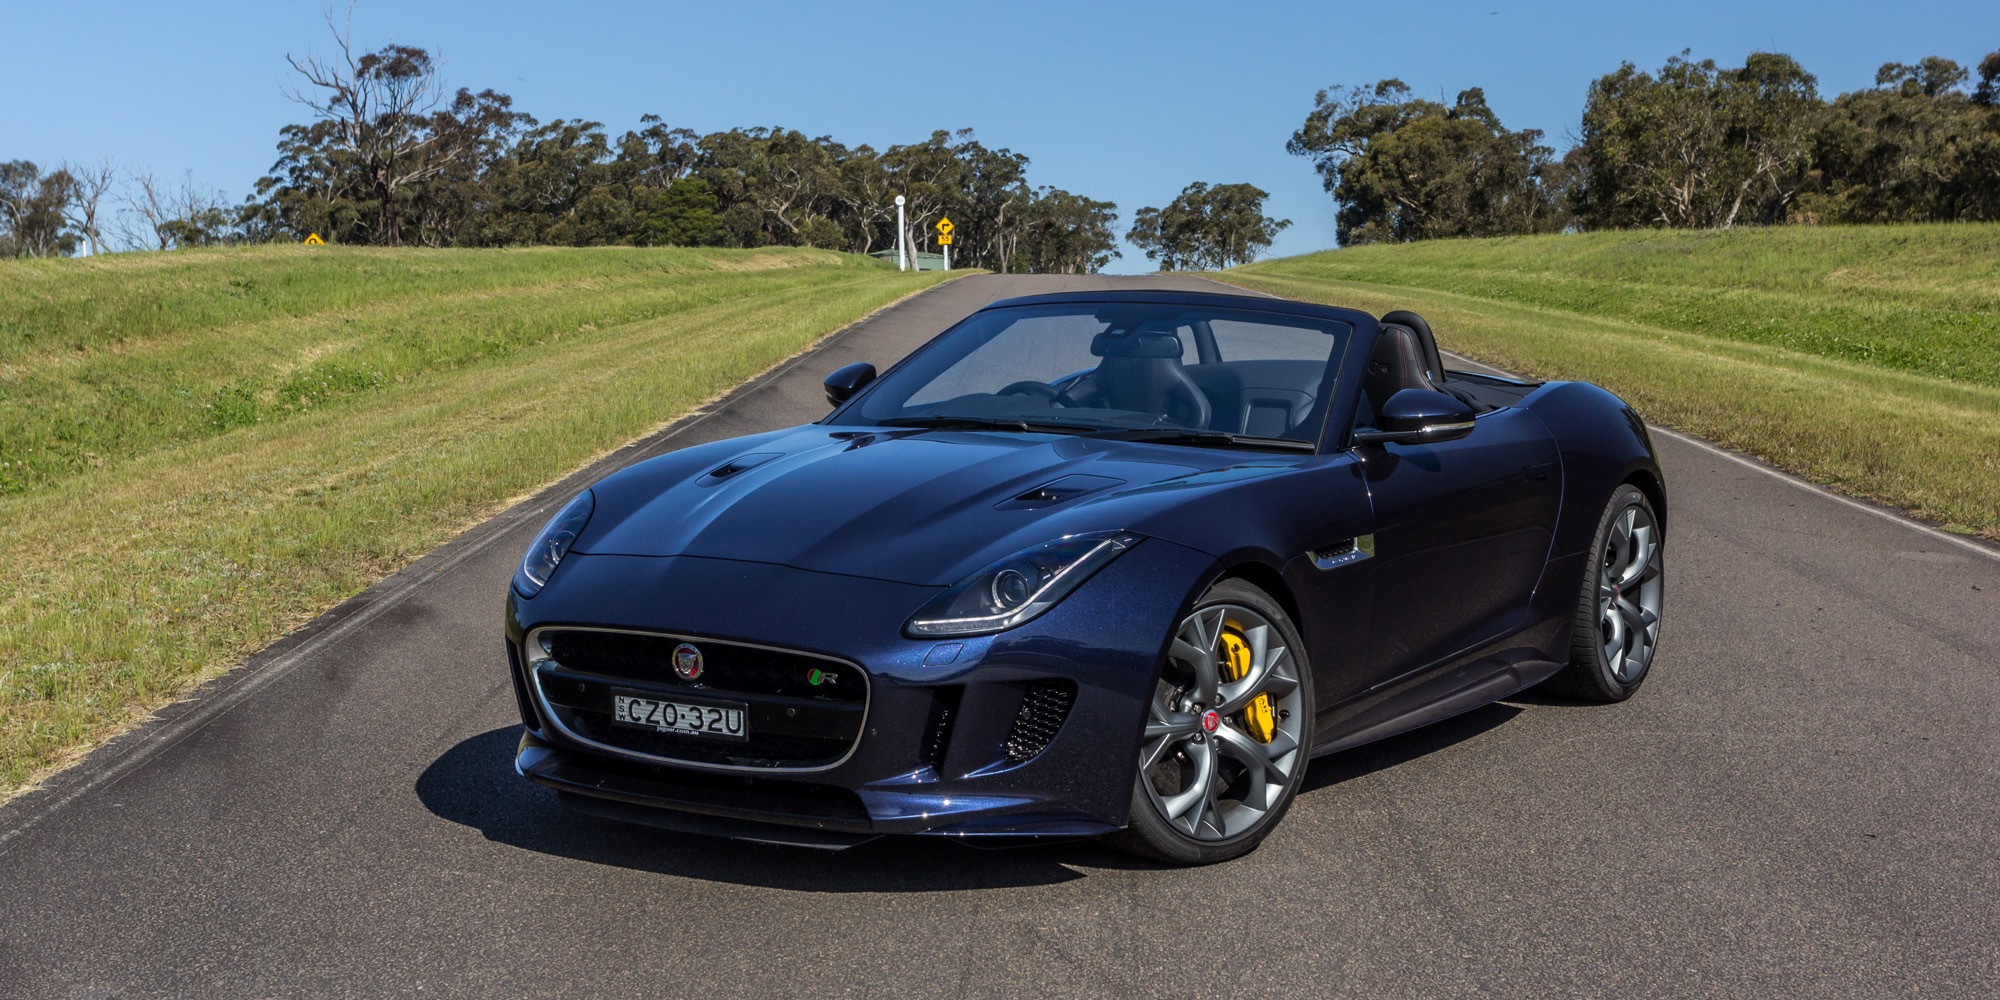 2015 jaguar f type r review awd convertible caradvice. Black Bedroom Furniture Sets. Home Design Ideas